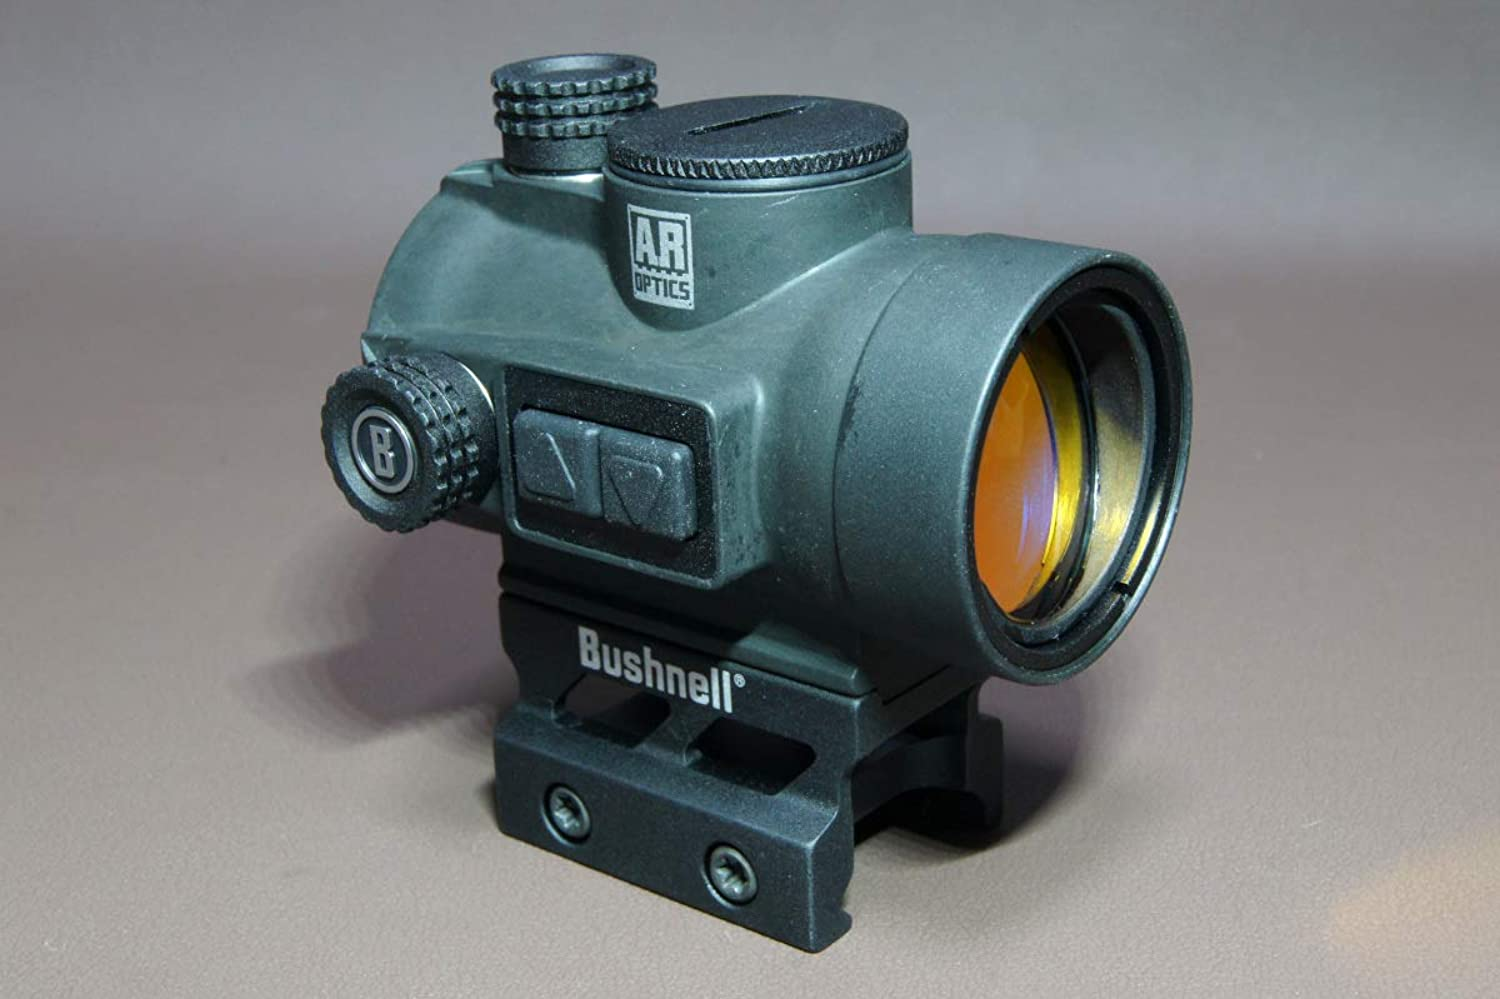 Bushnell AR Optics Red Dots  TRS26, 1x26mm, Matte, 3 MOA Red Dot, 1 2 MOA Click Value, MultiCoated, Waterproof Fogproof Shockproof, Industry Standard Mount, AR Height, CR2032